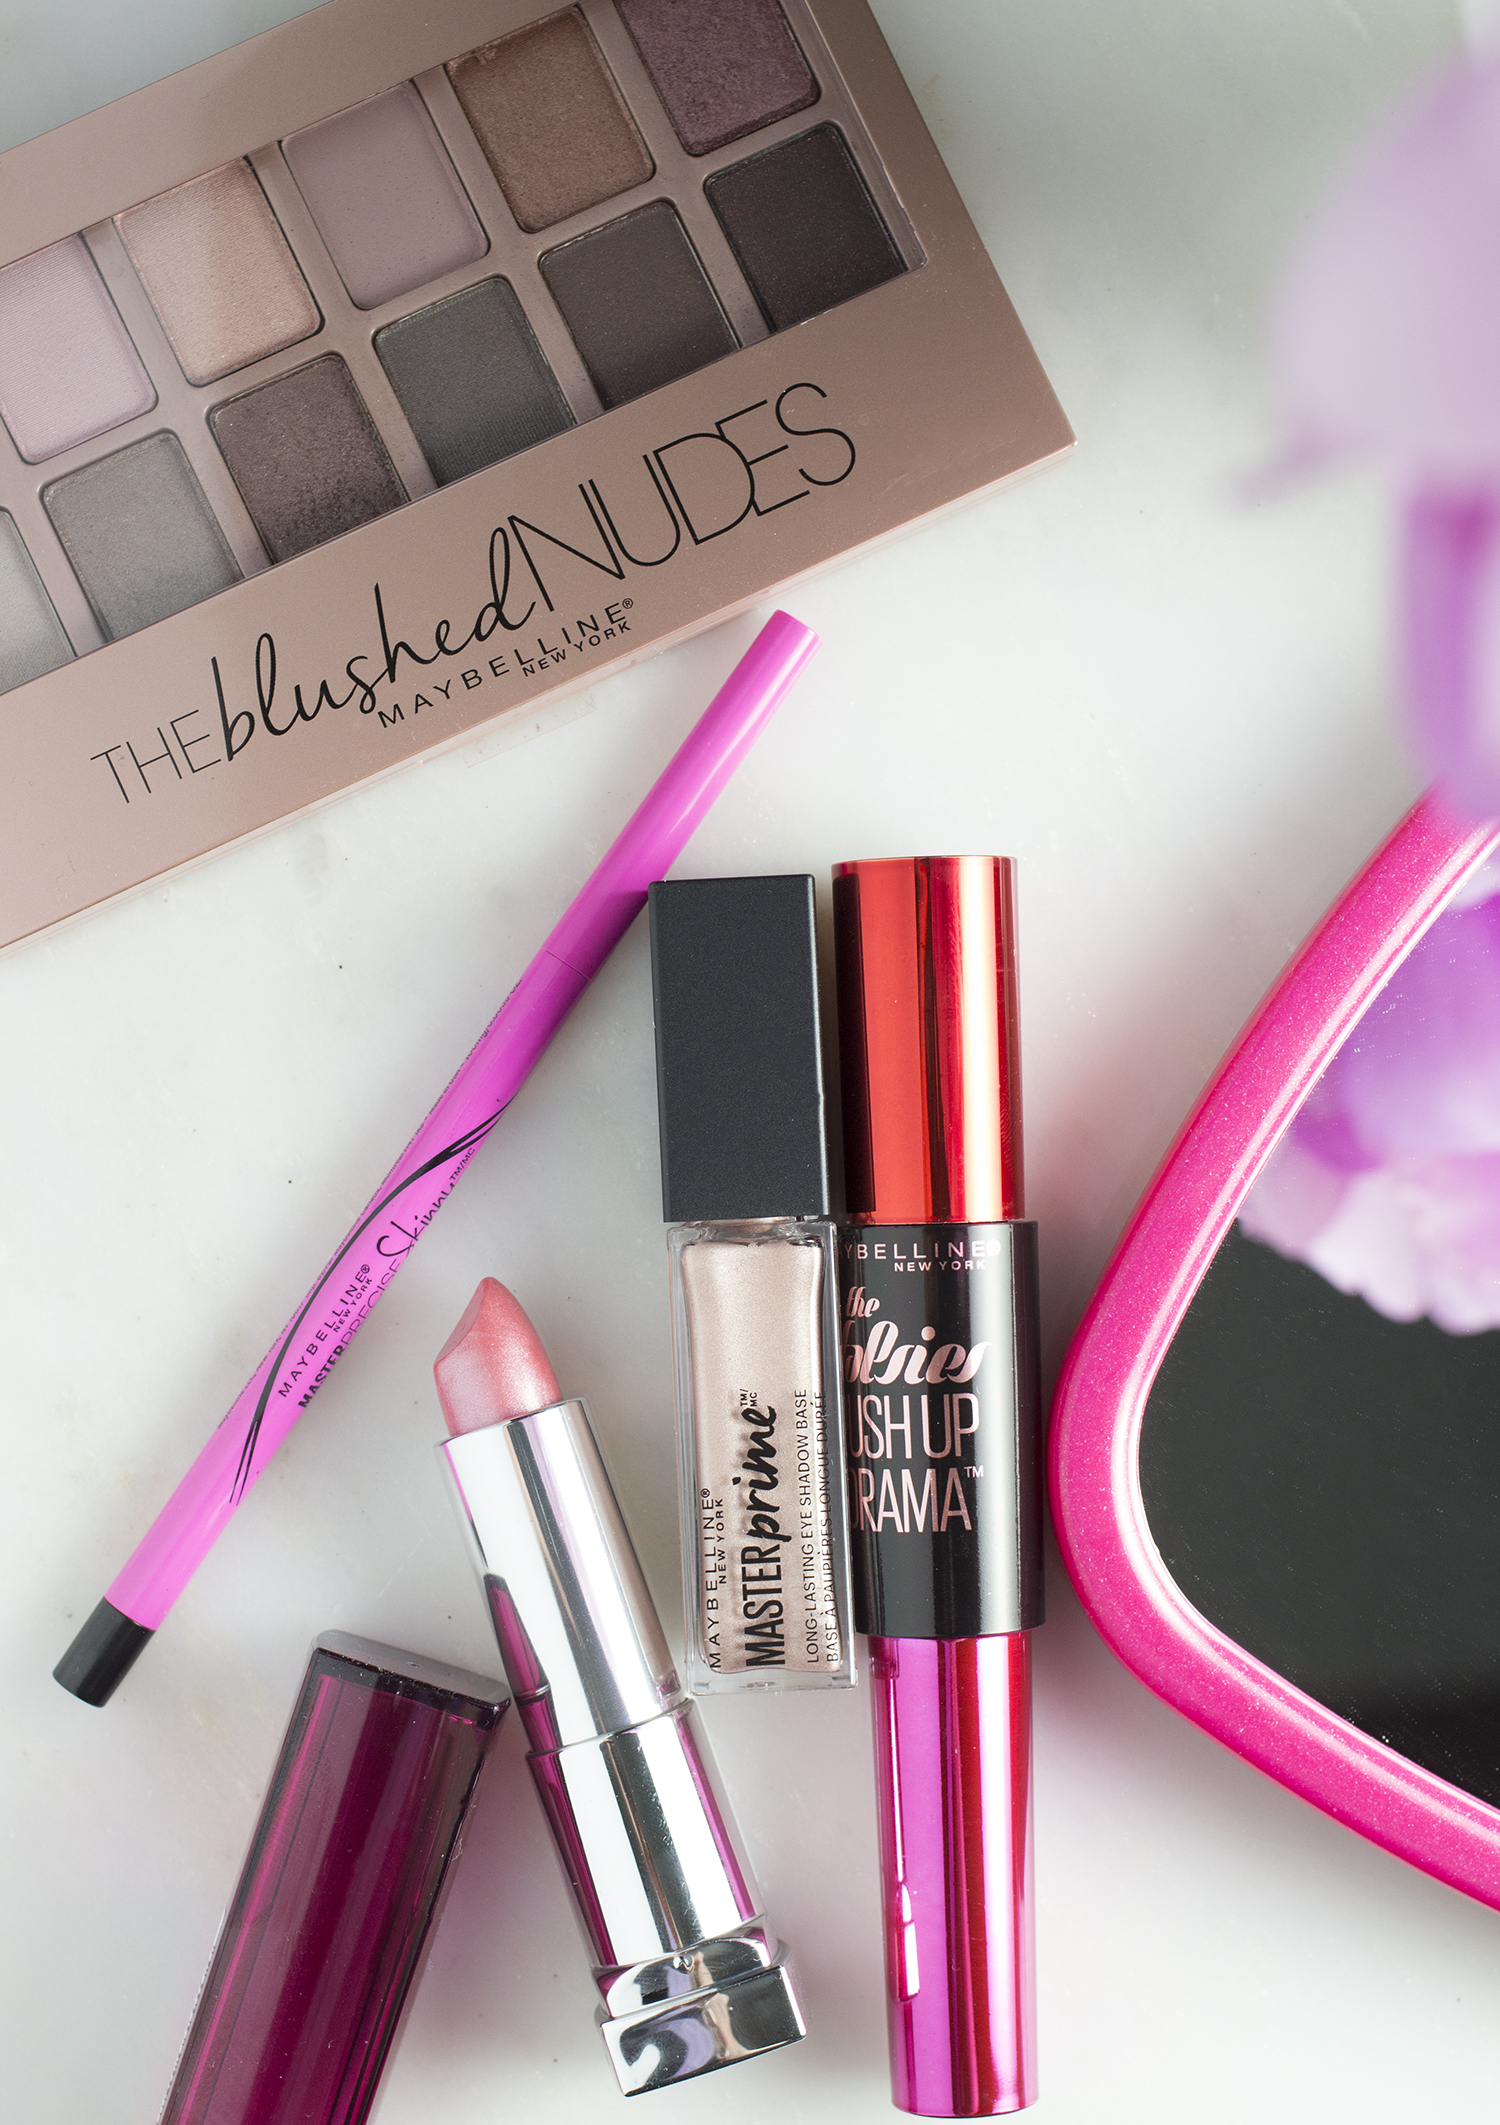 Maybelline The Blushed Nudes| 5 Minutes Romantic Smokey Eye